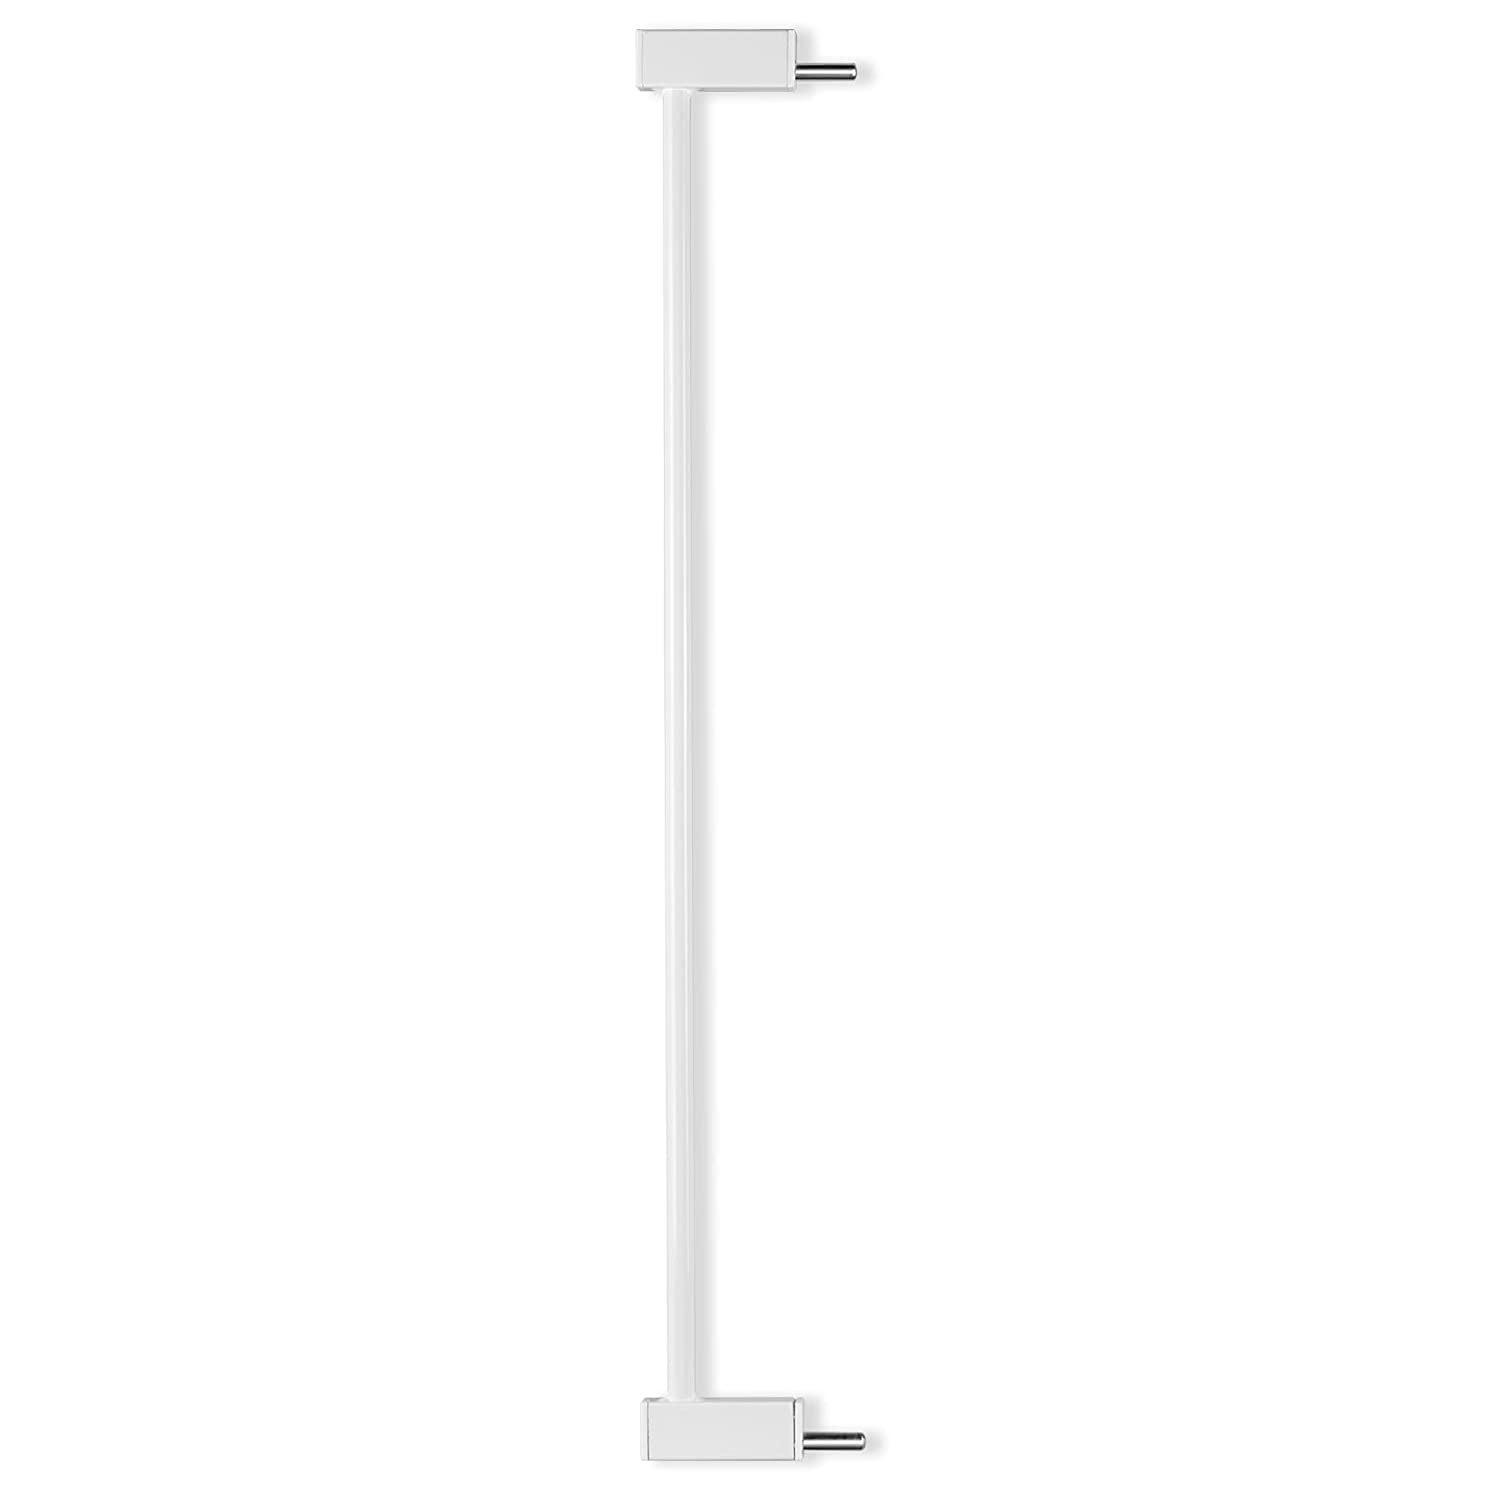 BABELIO Metal Baby Gate Dog Gate, 2.7inch (7cm) White Extension, Extra Wide Pet Gate for Stairs & Doorways, Pressure Mounted Walk Thru Child Gate with Door, NO Need Tools NO Drilling